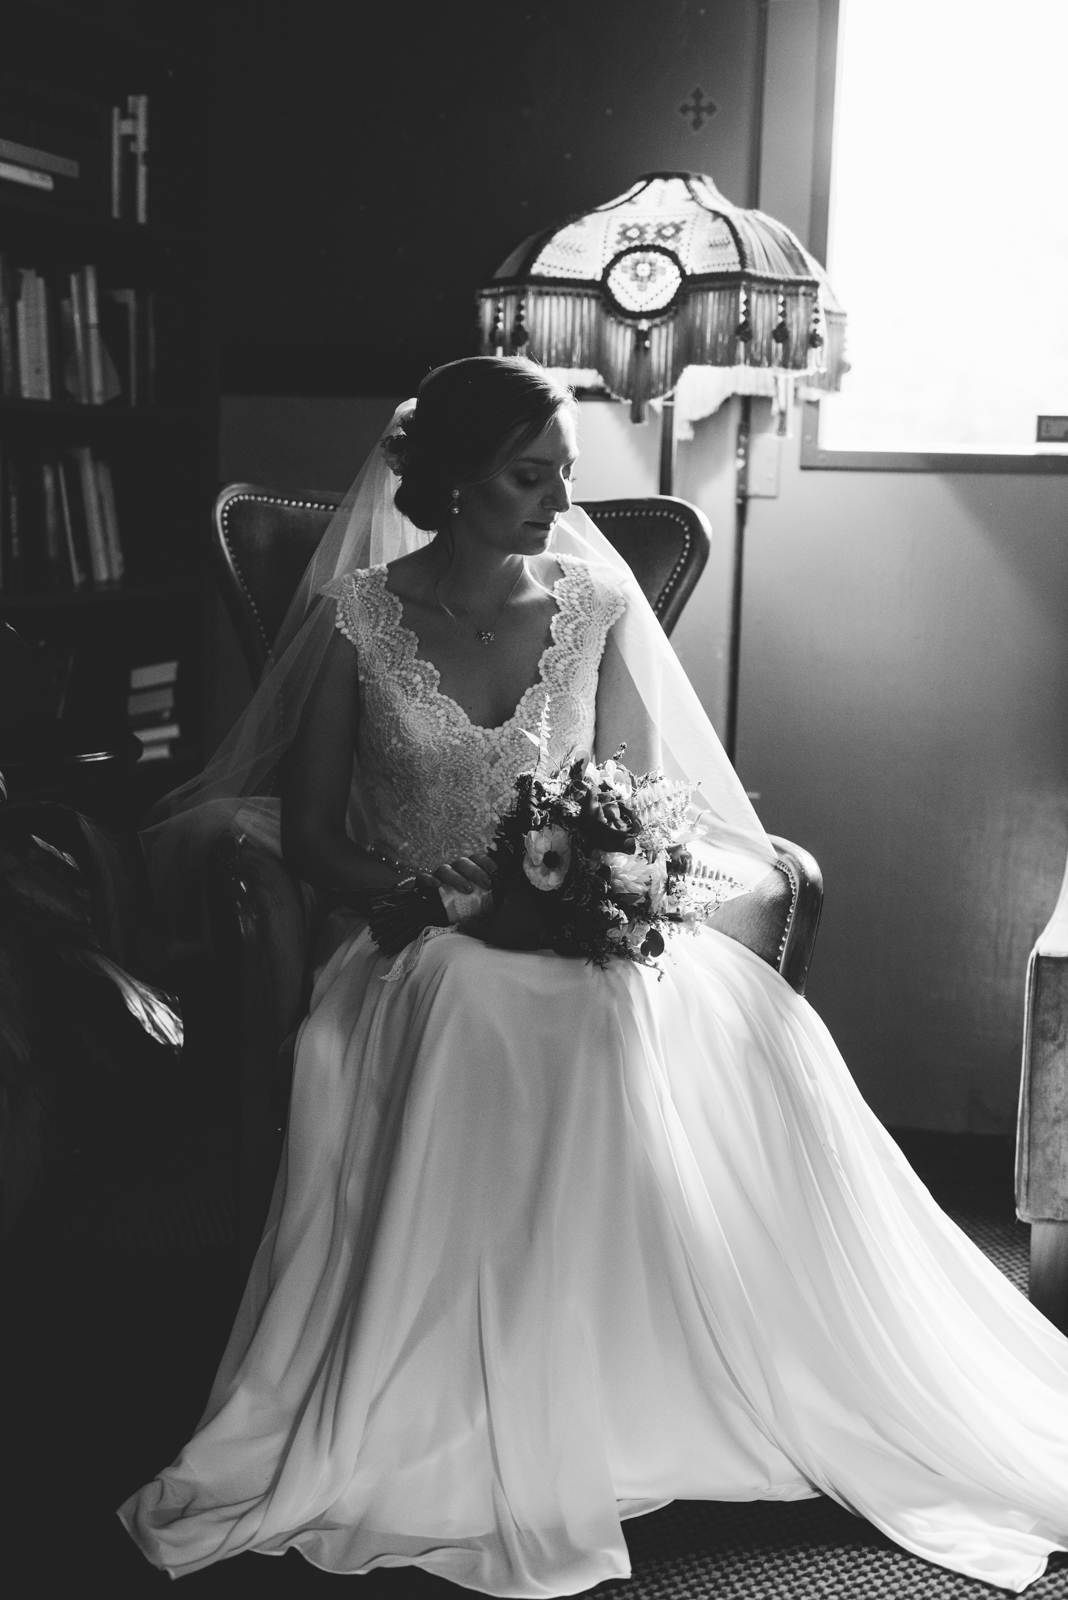 Bridal portrait at Edgefield in beautiful library